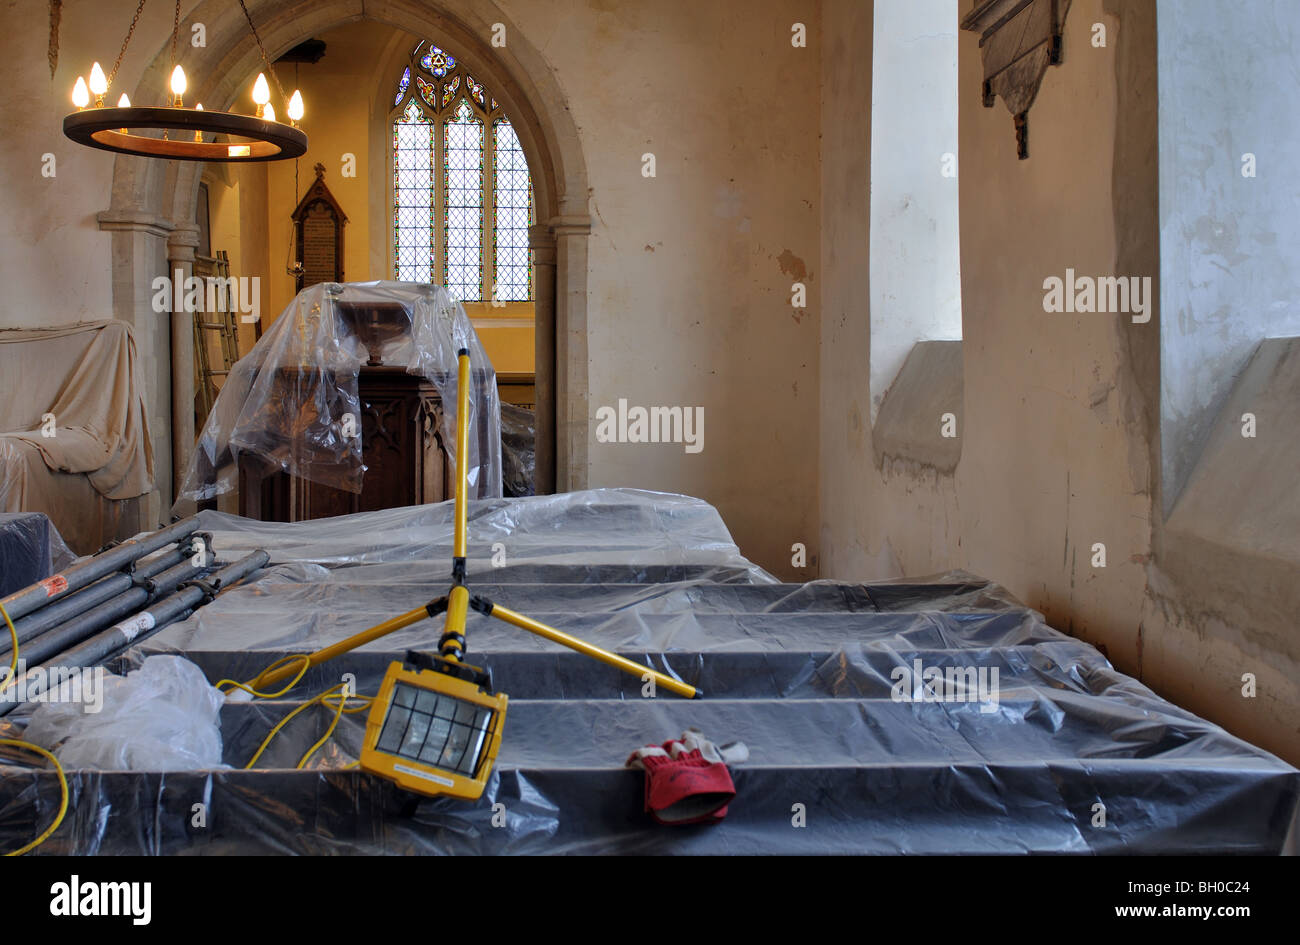 St. Mary`s Church interior during restoration, Ardley, Oxfordshire, England, UK - Stock Image